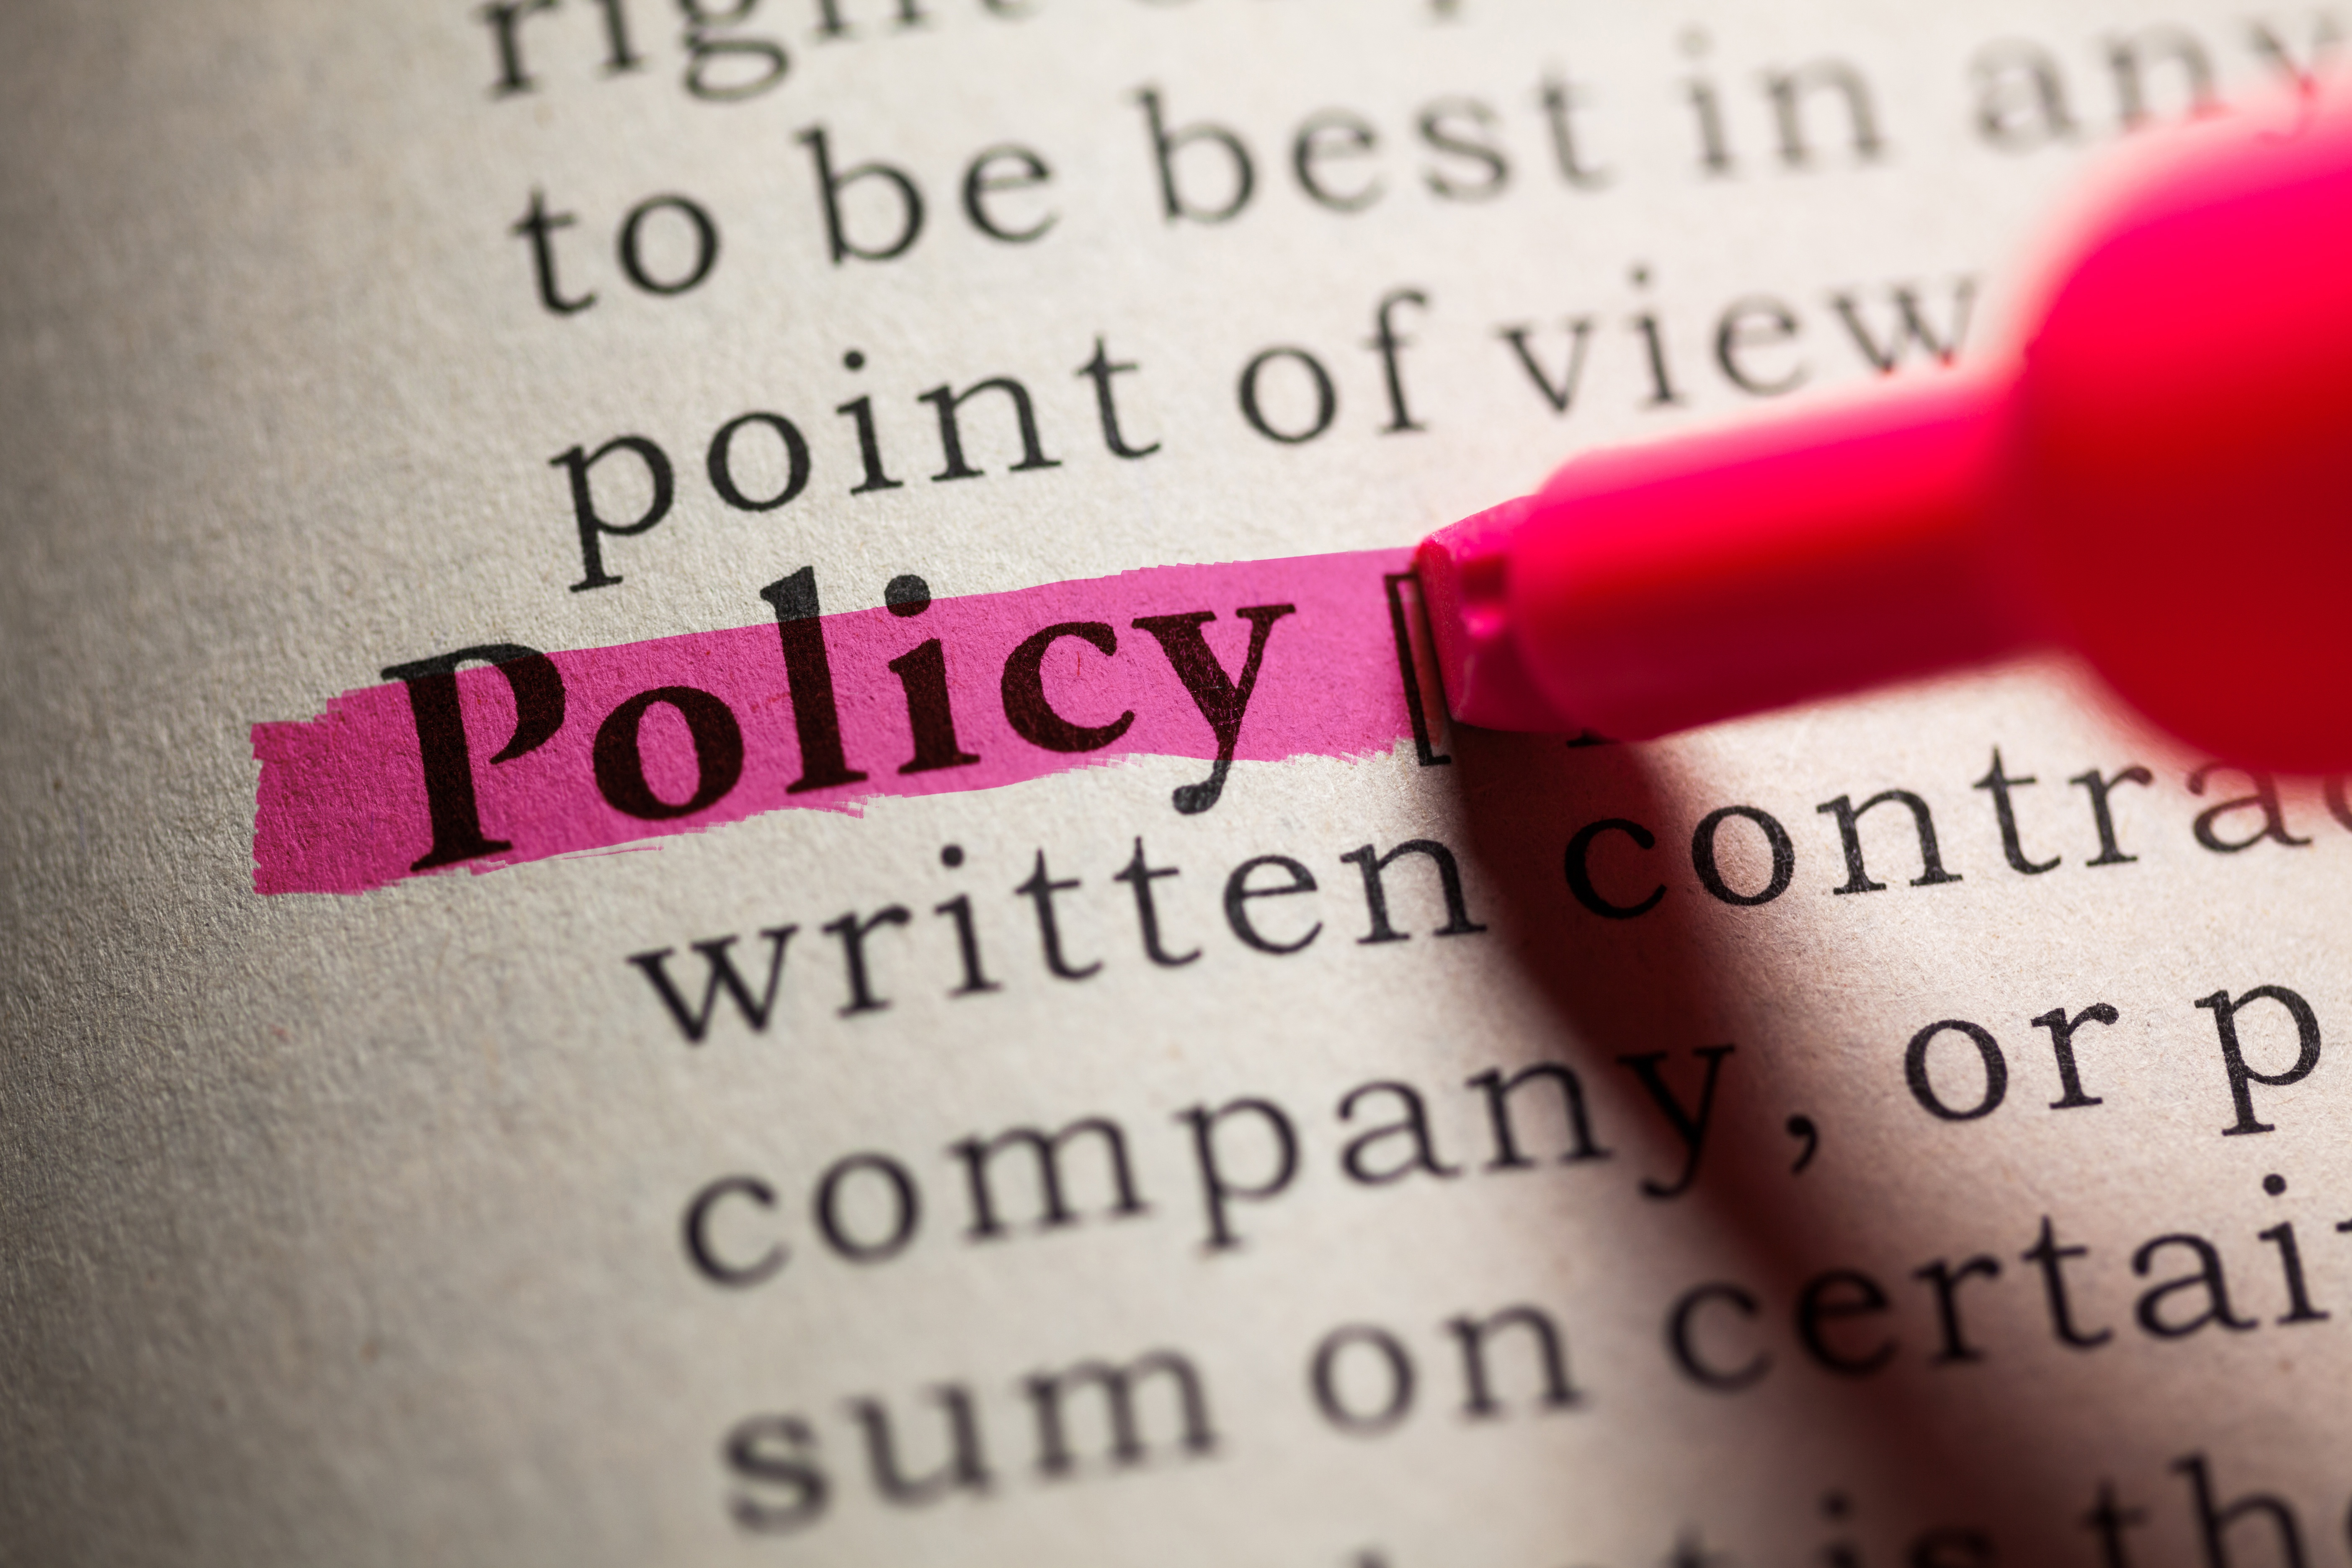 3 common return policy mistakes retailers are making everyday